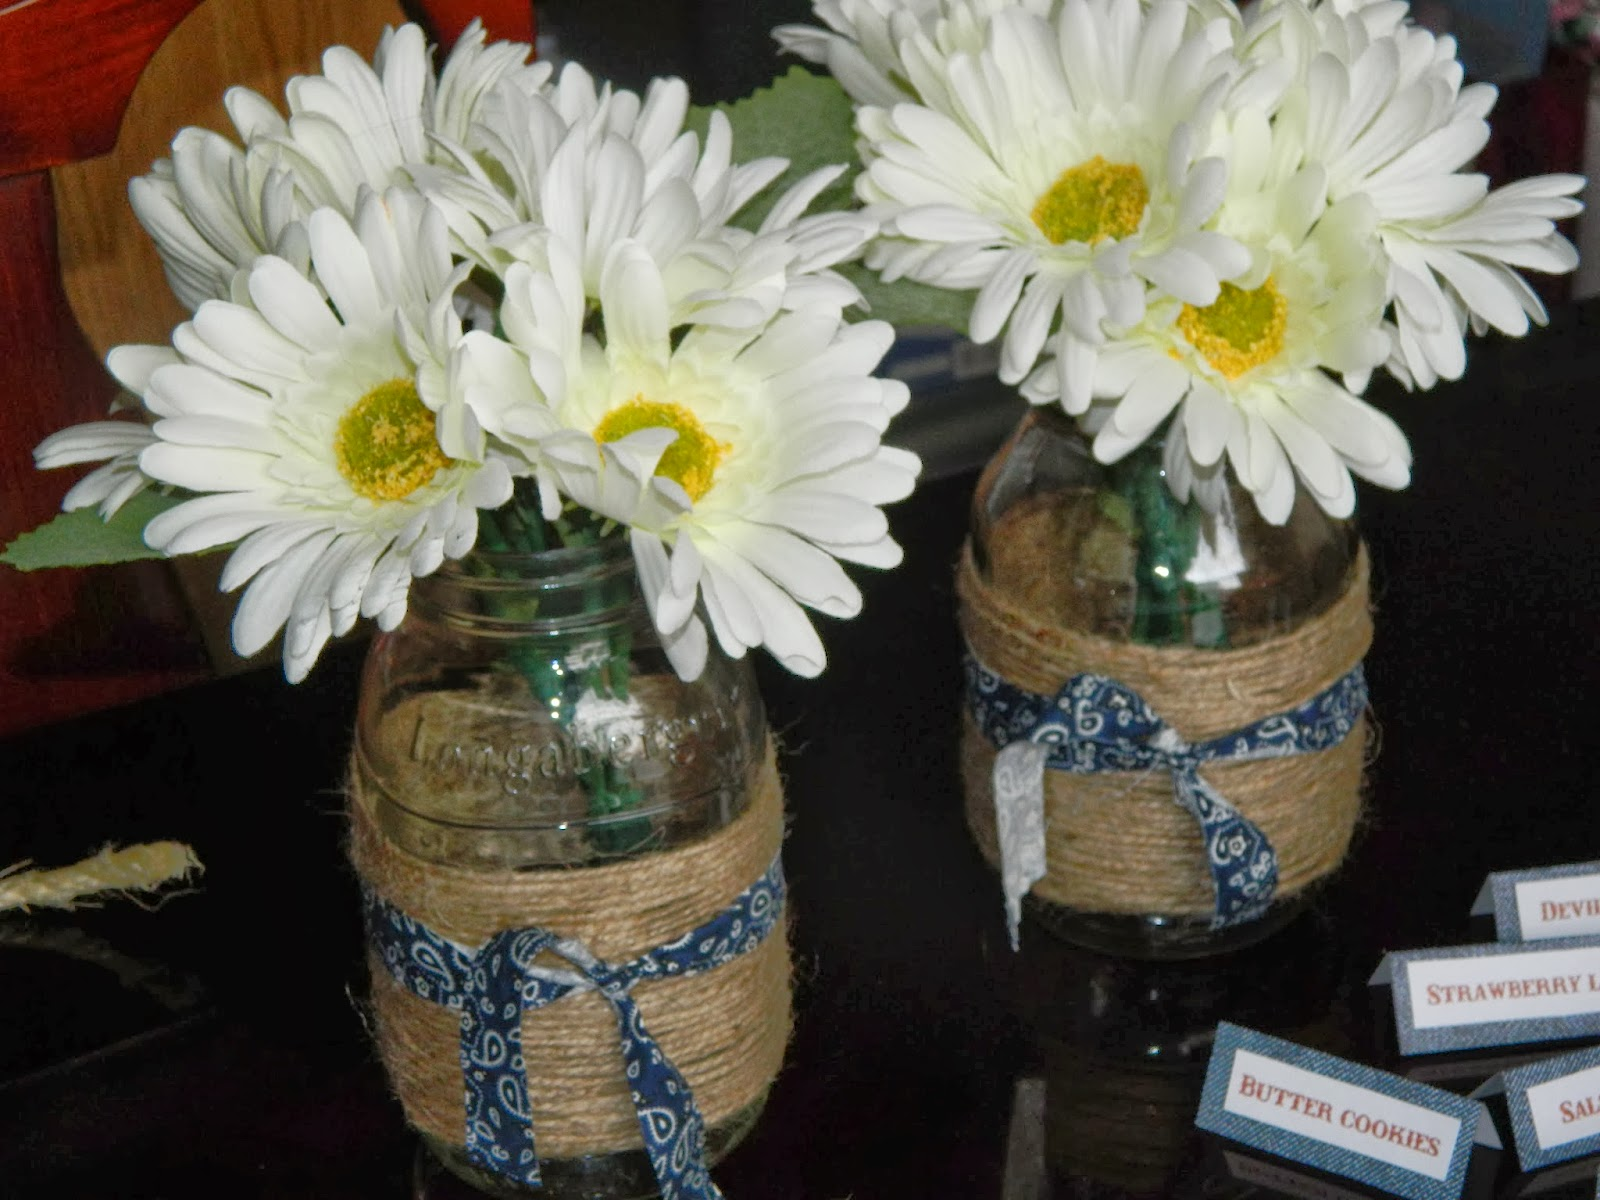 I Purchased A Bush Of Fake Daisies From Hobby Lobby At 50% Off For $4.50.  There Were 12 Daisies In The Bush. I Used 2 Quart Size Mason Jars I Already  Had ...